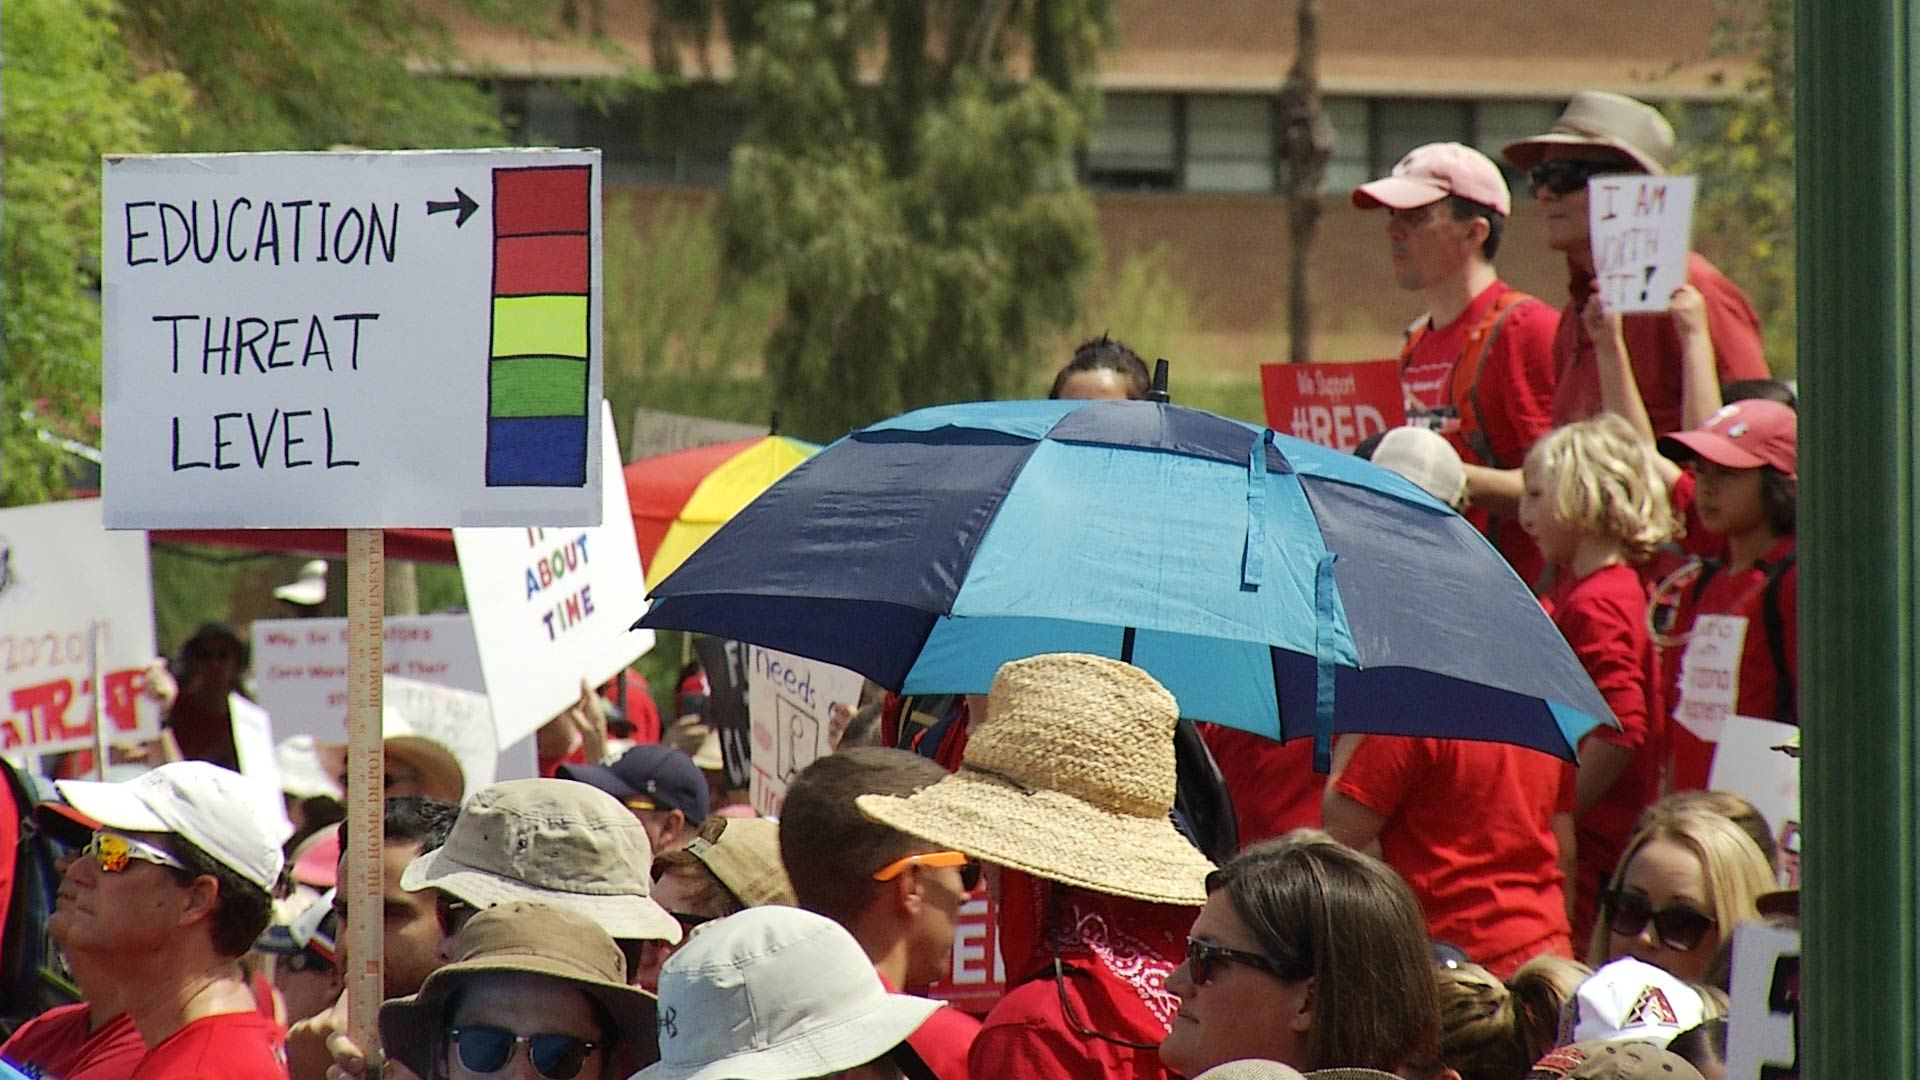 #RedForEd protestors at the Arizona Capitol, Monday, April 30.